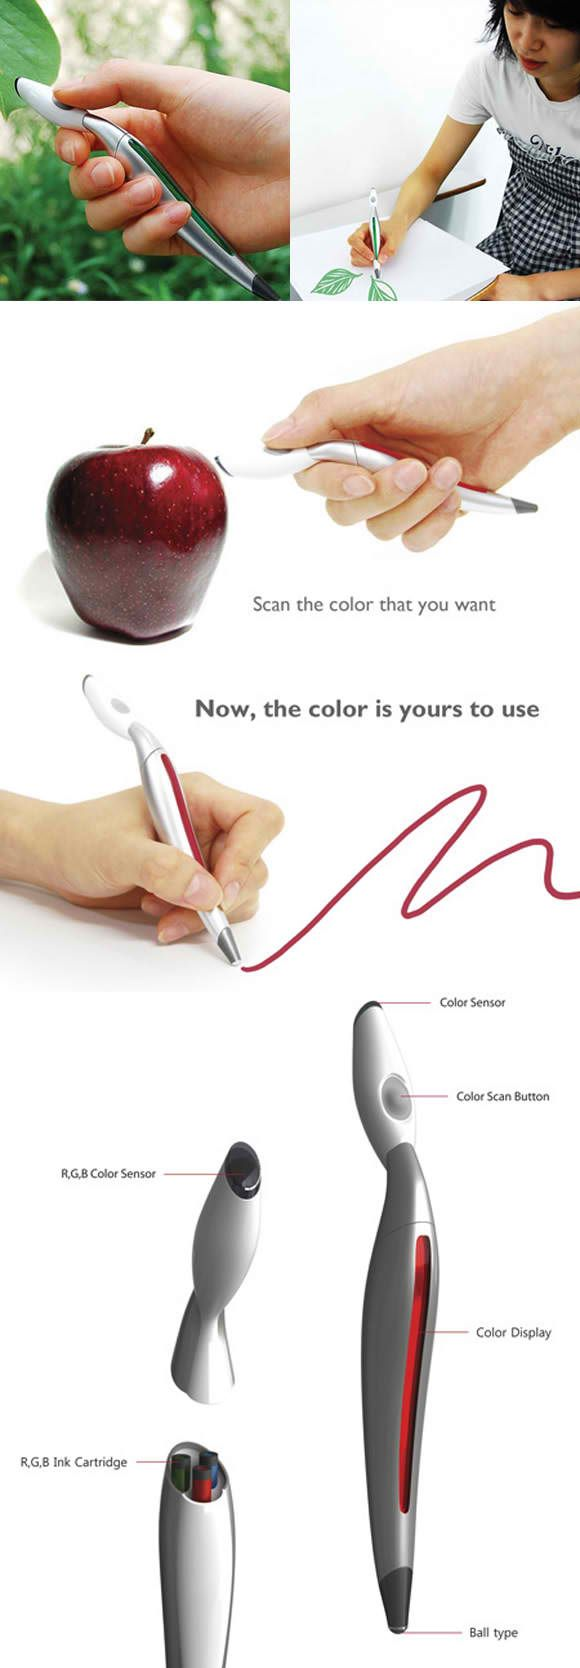 A pen that scans a color and then copies it